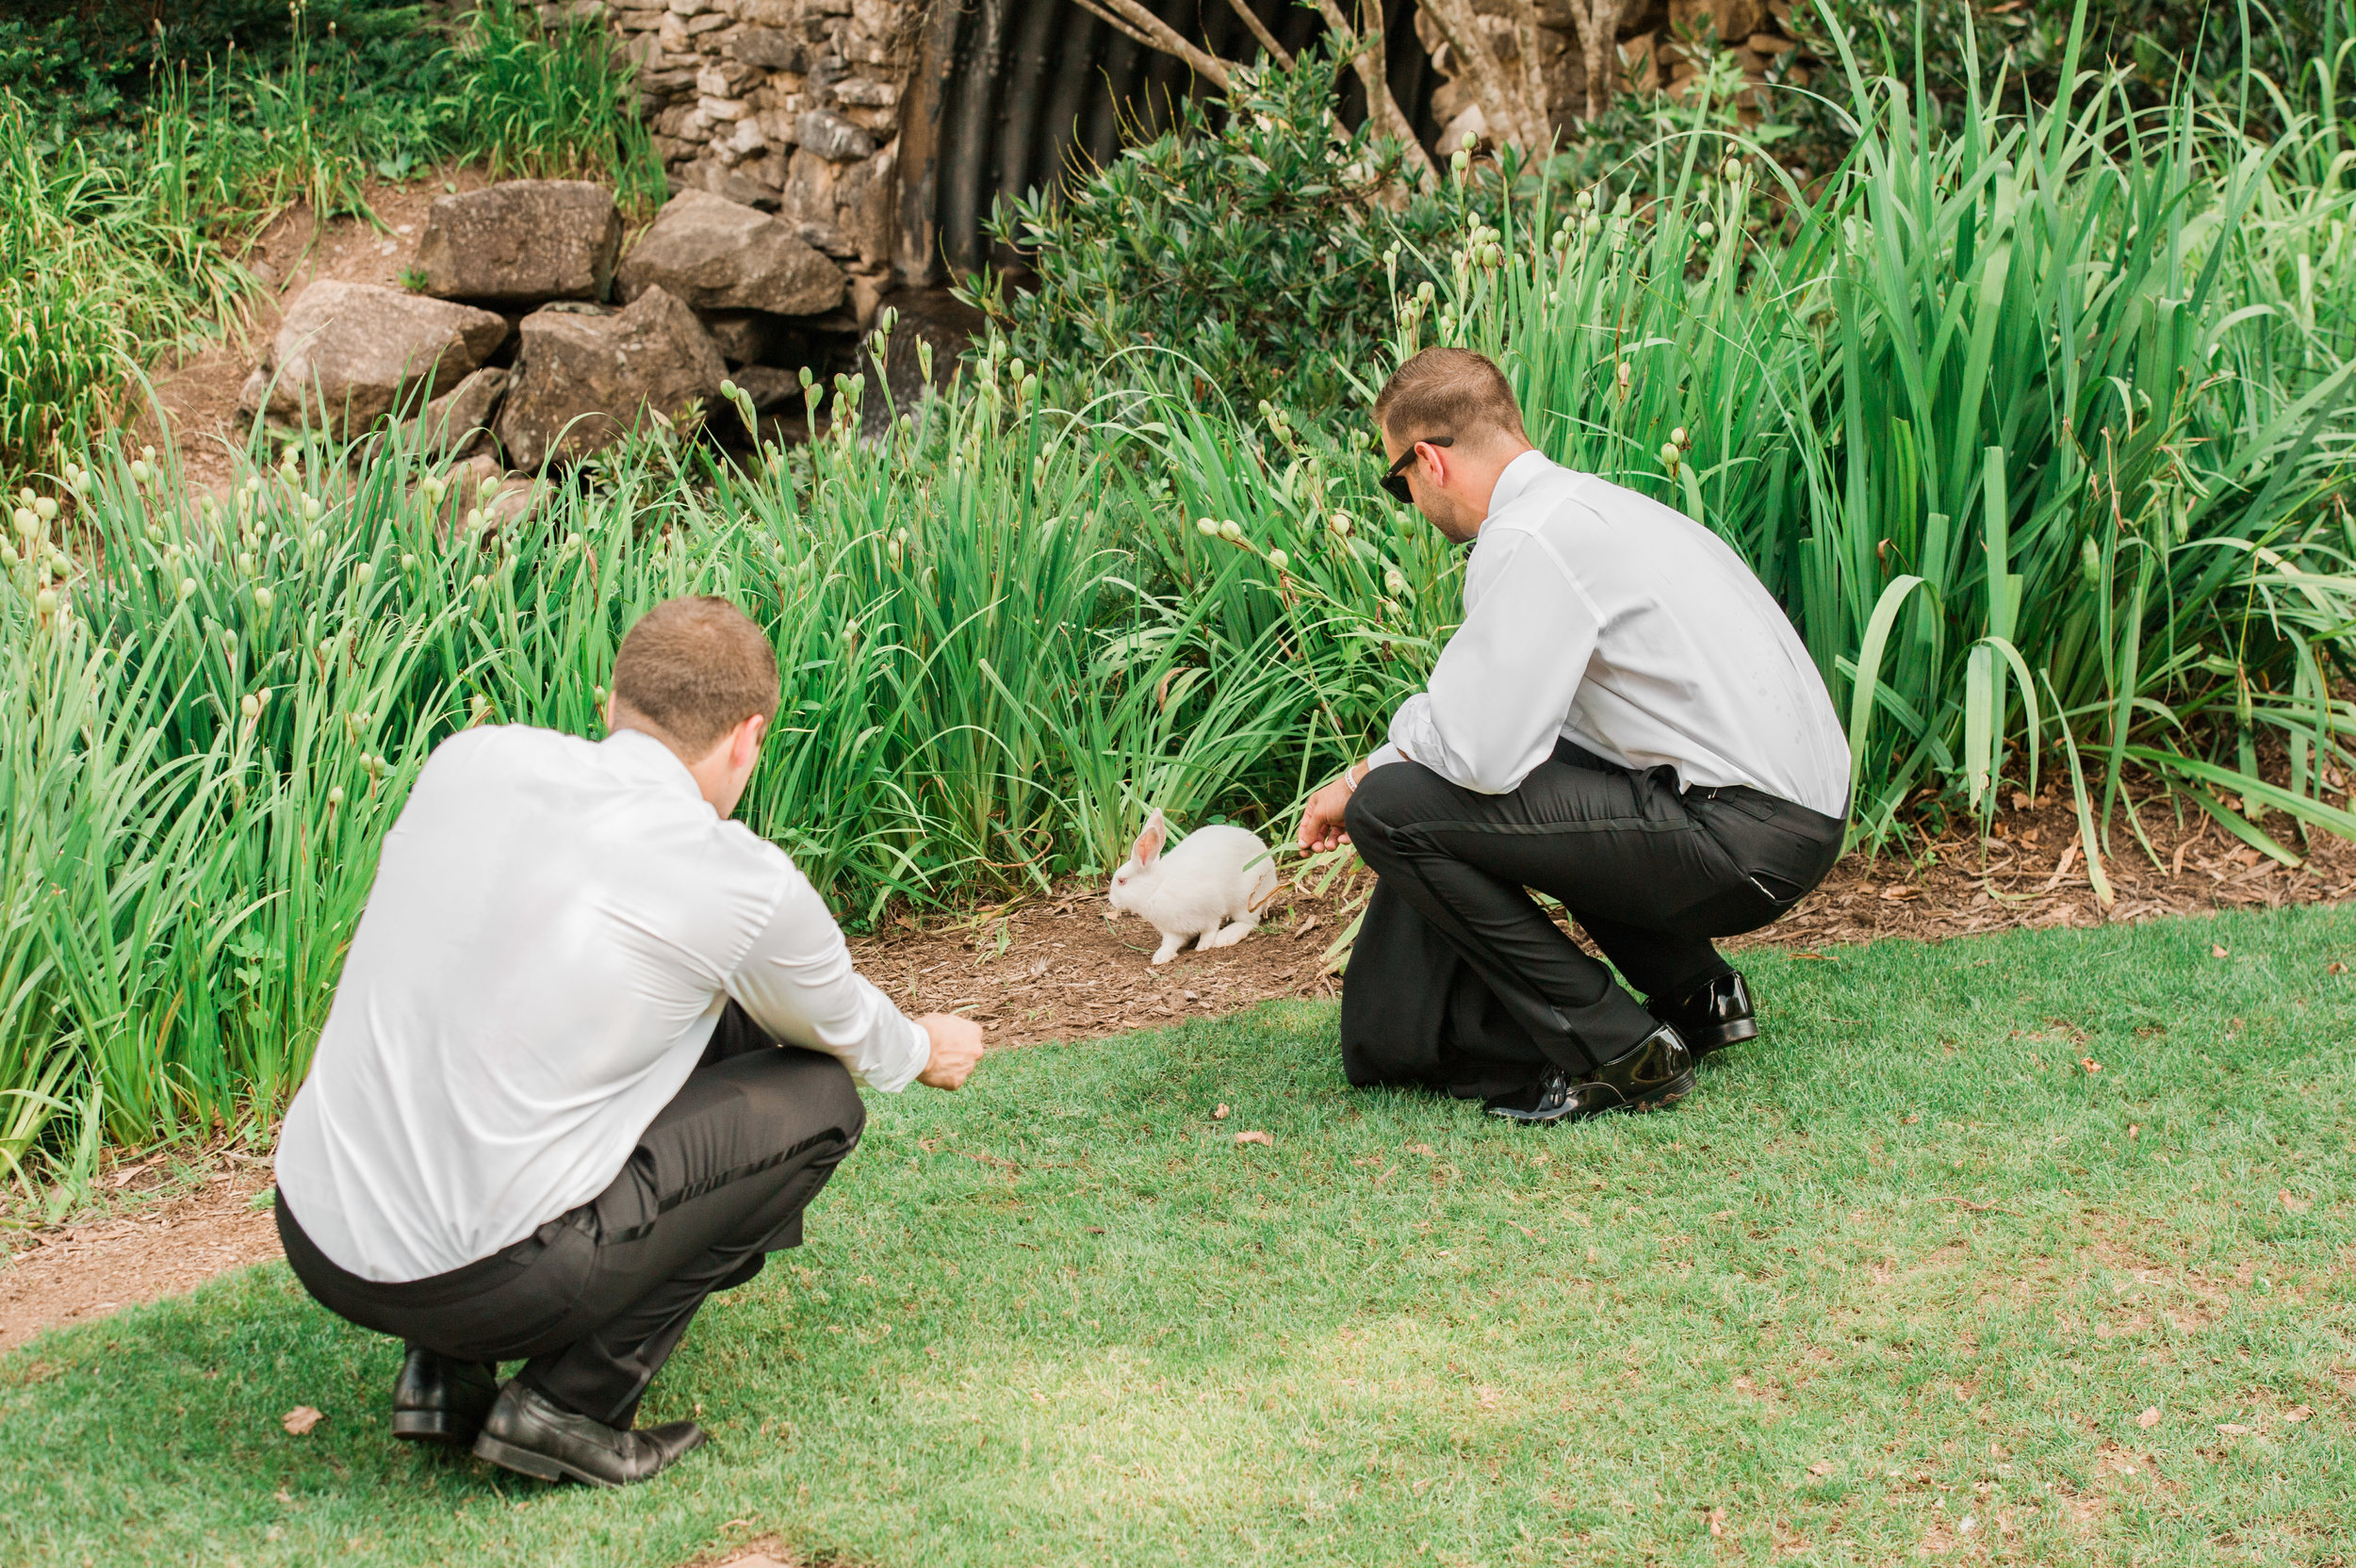 That time the groomsmen got distracted by a bunny....